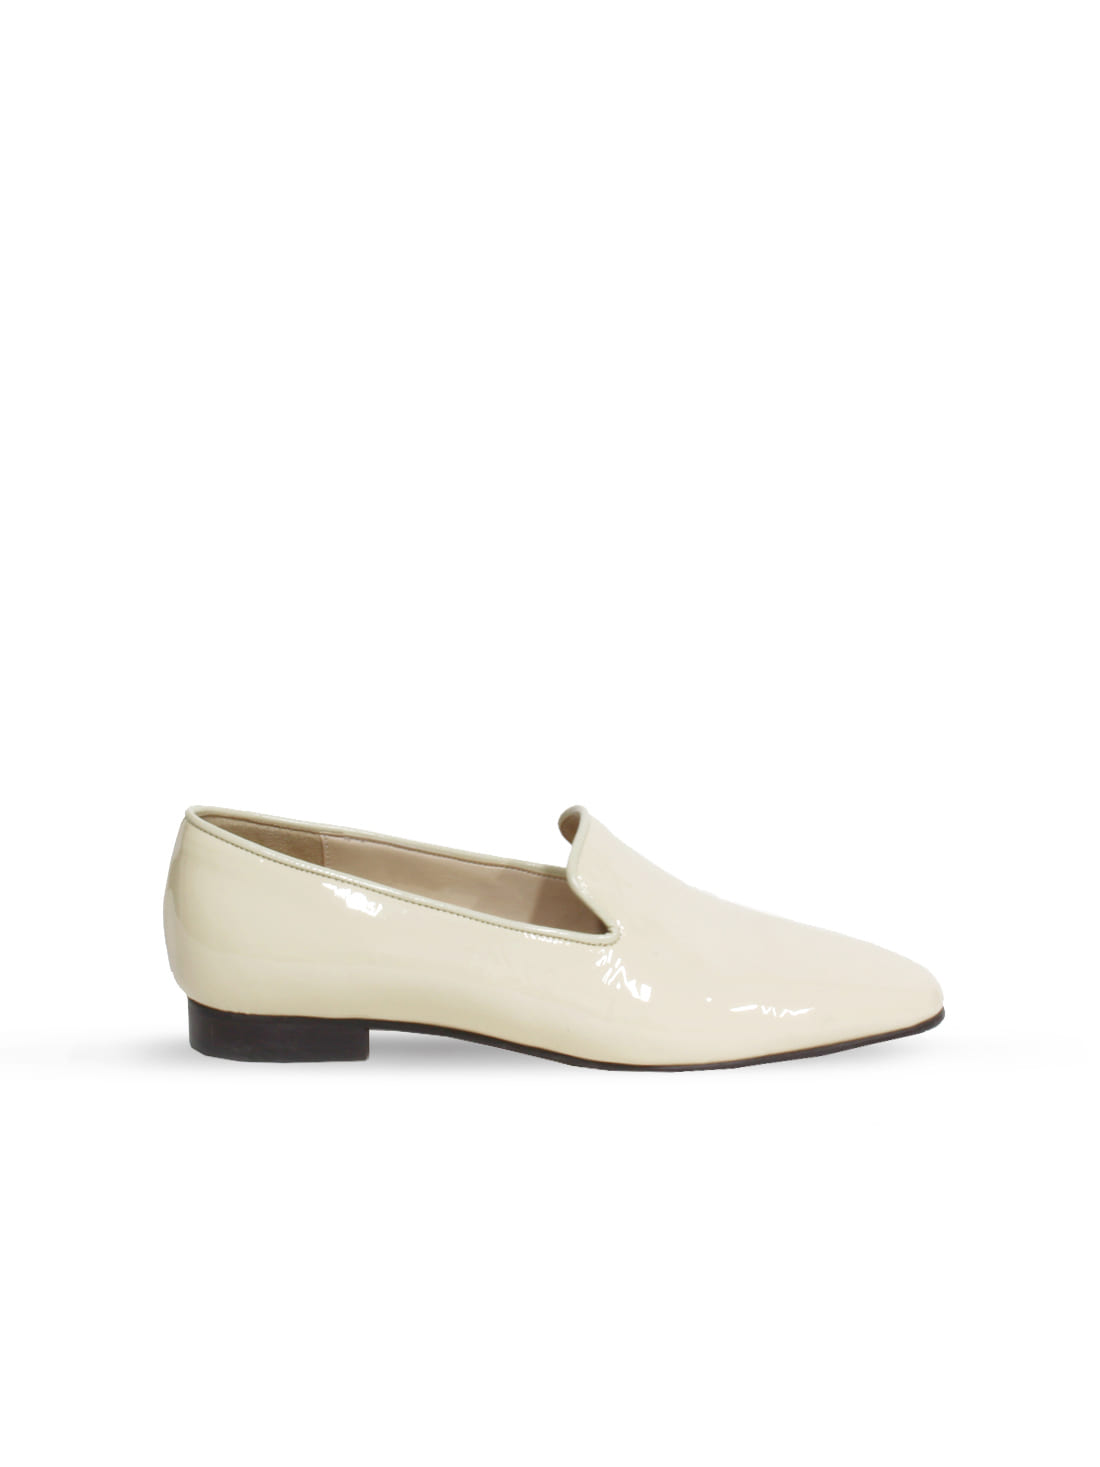 patent loafer - cream